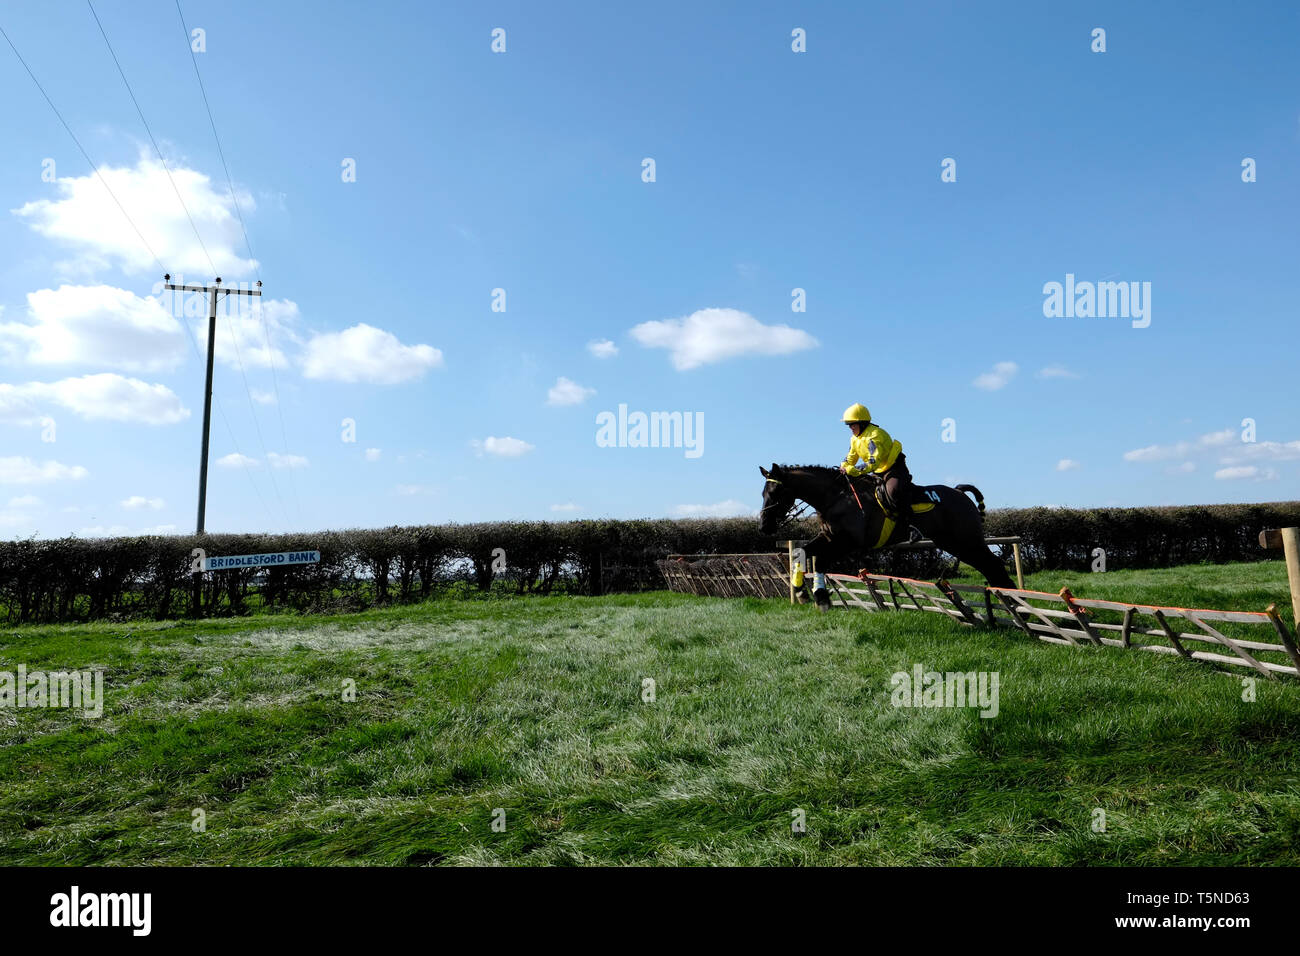 The Isle of Wight Grand National and Ashey Scurry 2019, West Ashey Farm, Ryde, Isle of Wight. Horse racing and spectators around the rural course. Stock Photo